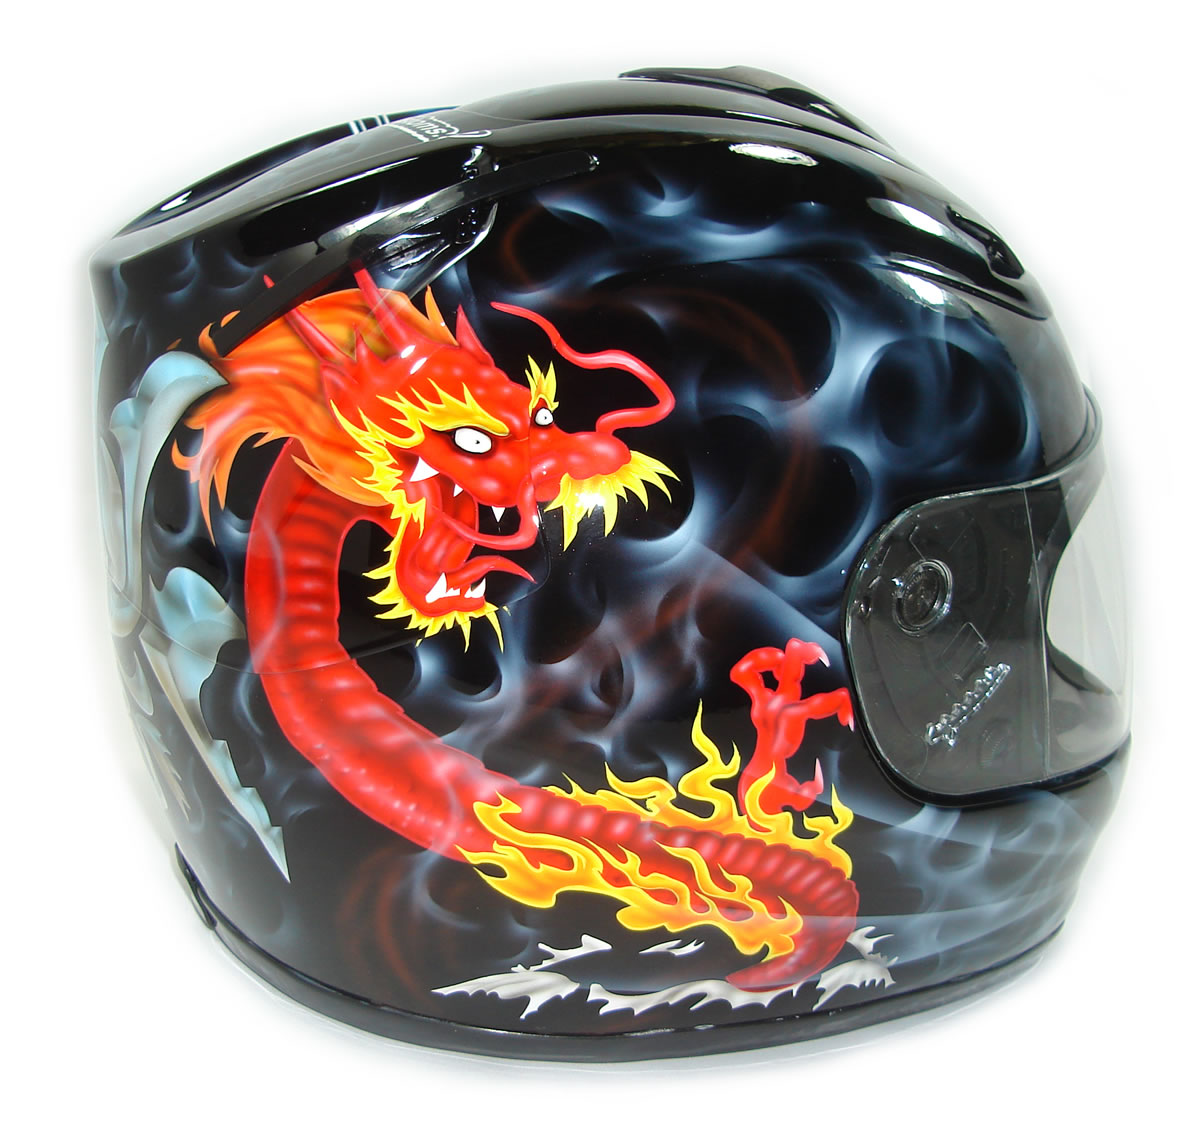 Custom-Painted Helmets 1200 x 1139 · 191 kB · jpeg